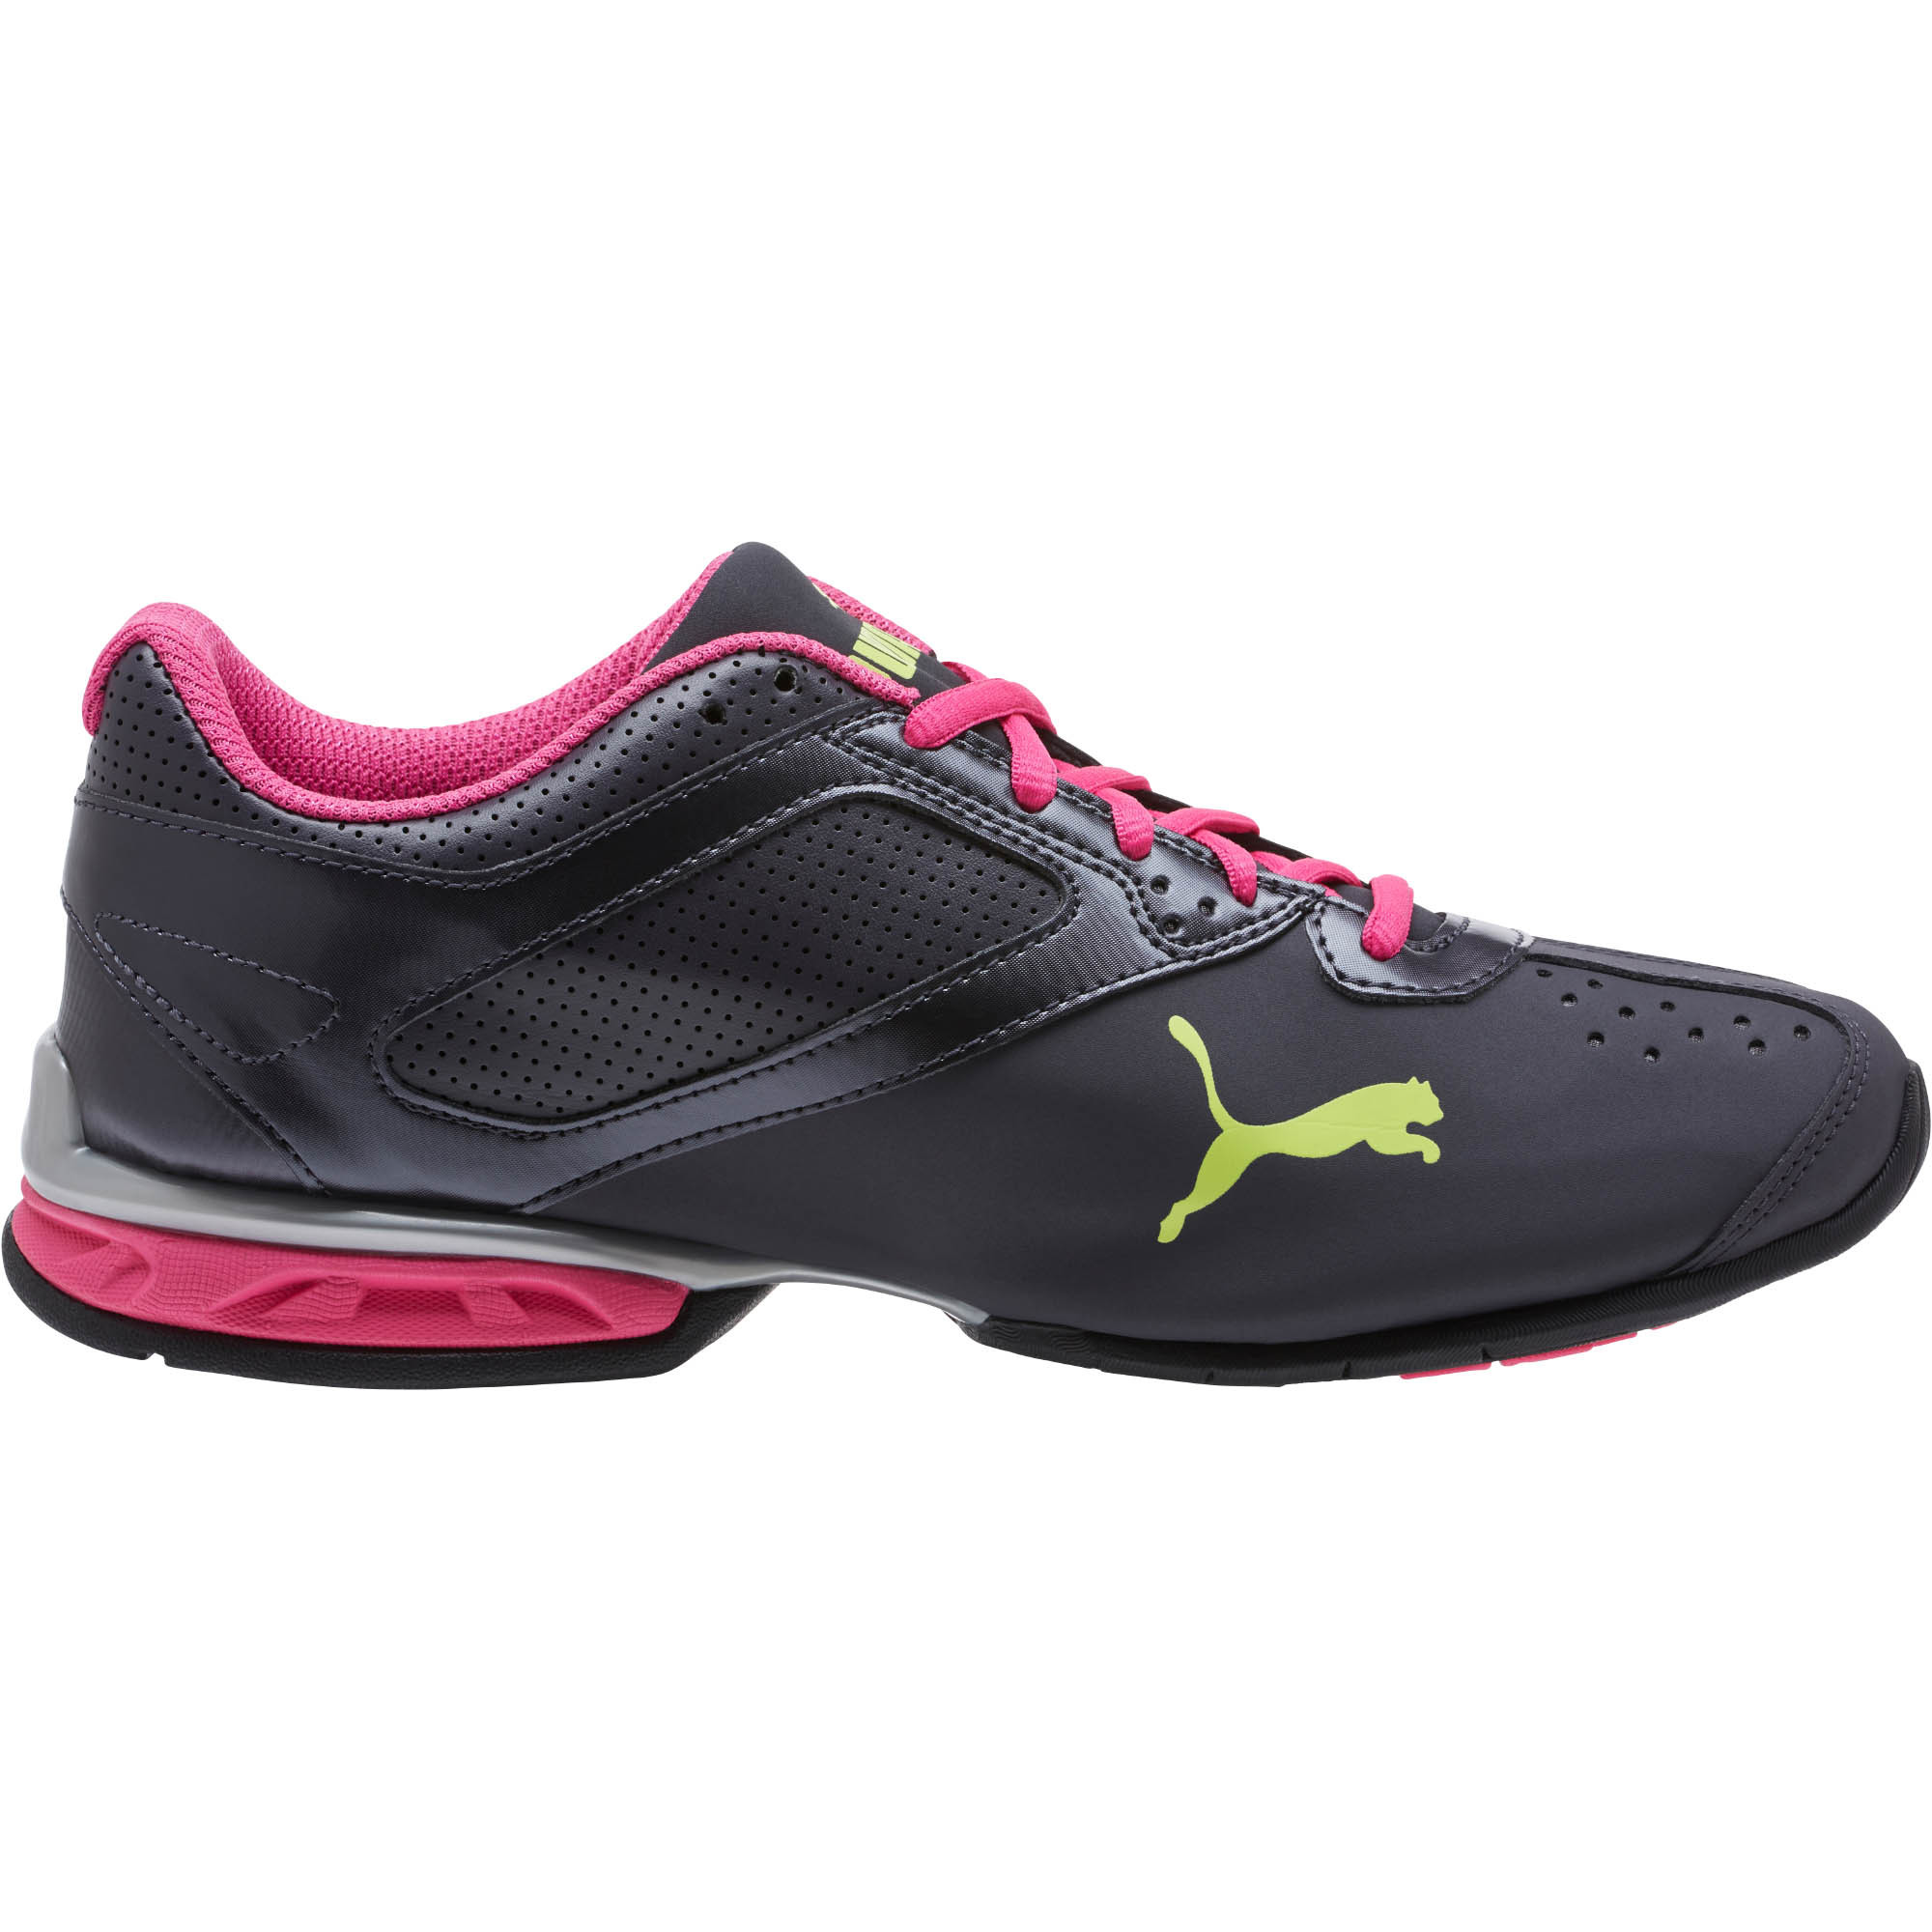 PUMA-Tazon-6-FM-Women-039-s-Sneakers-Women-Shoe-Running thumbnail 19